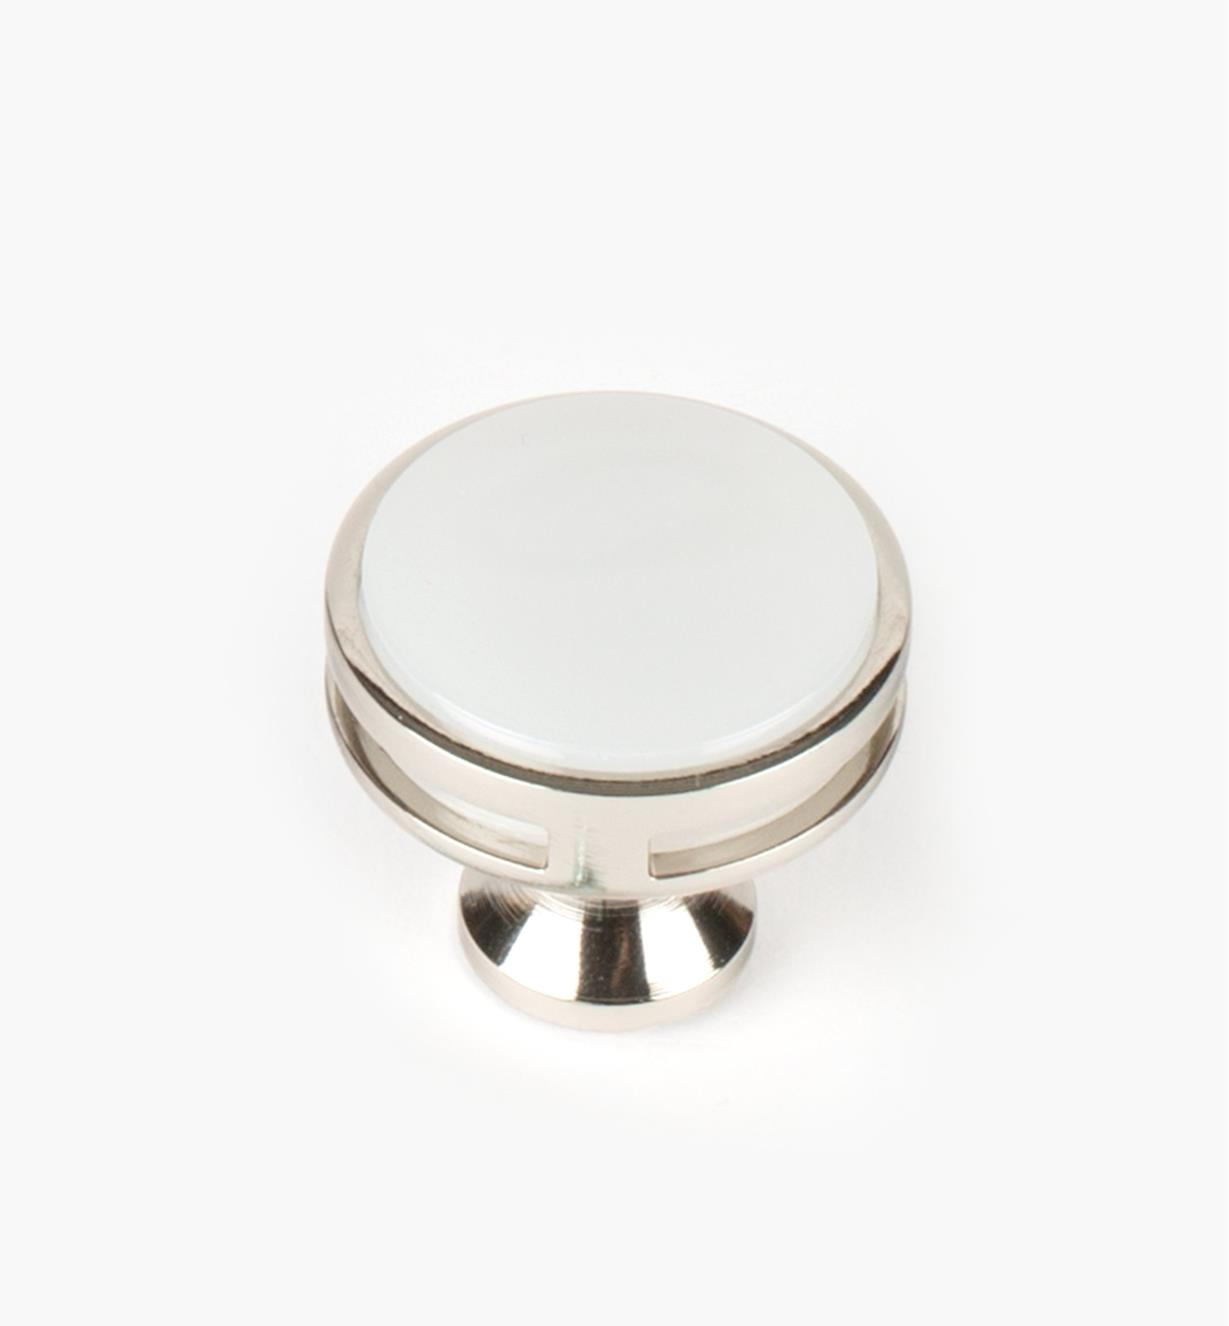 "02A1468 - Oberon Polished Nickel / Acrylic 1 3/8"" Knob, each"